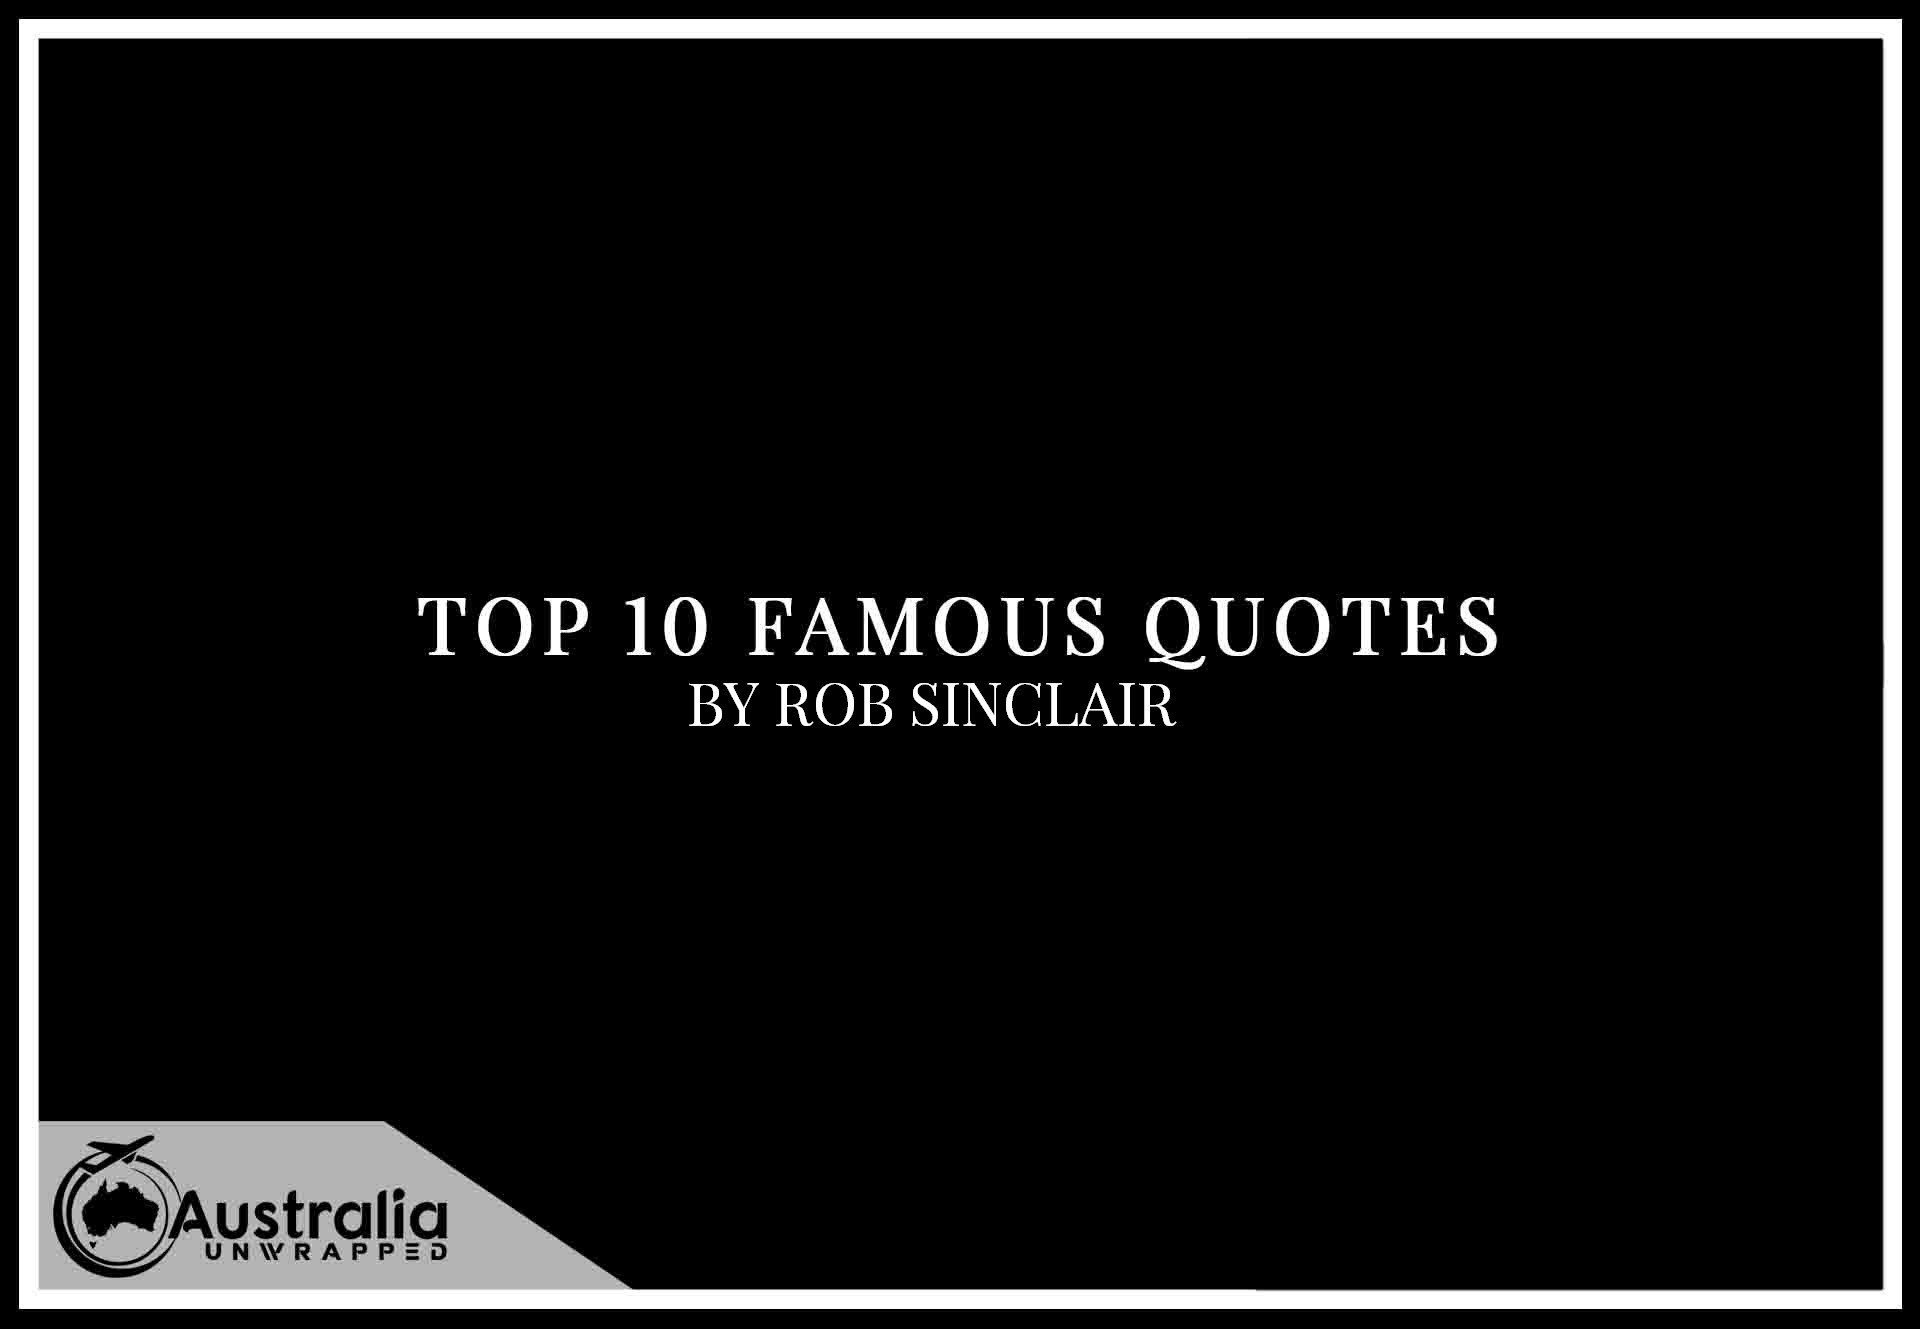 Top 10 Famous Quotes by Author Rob Sinclair